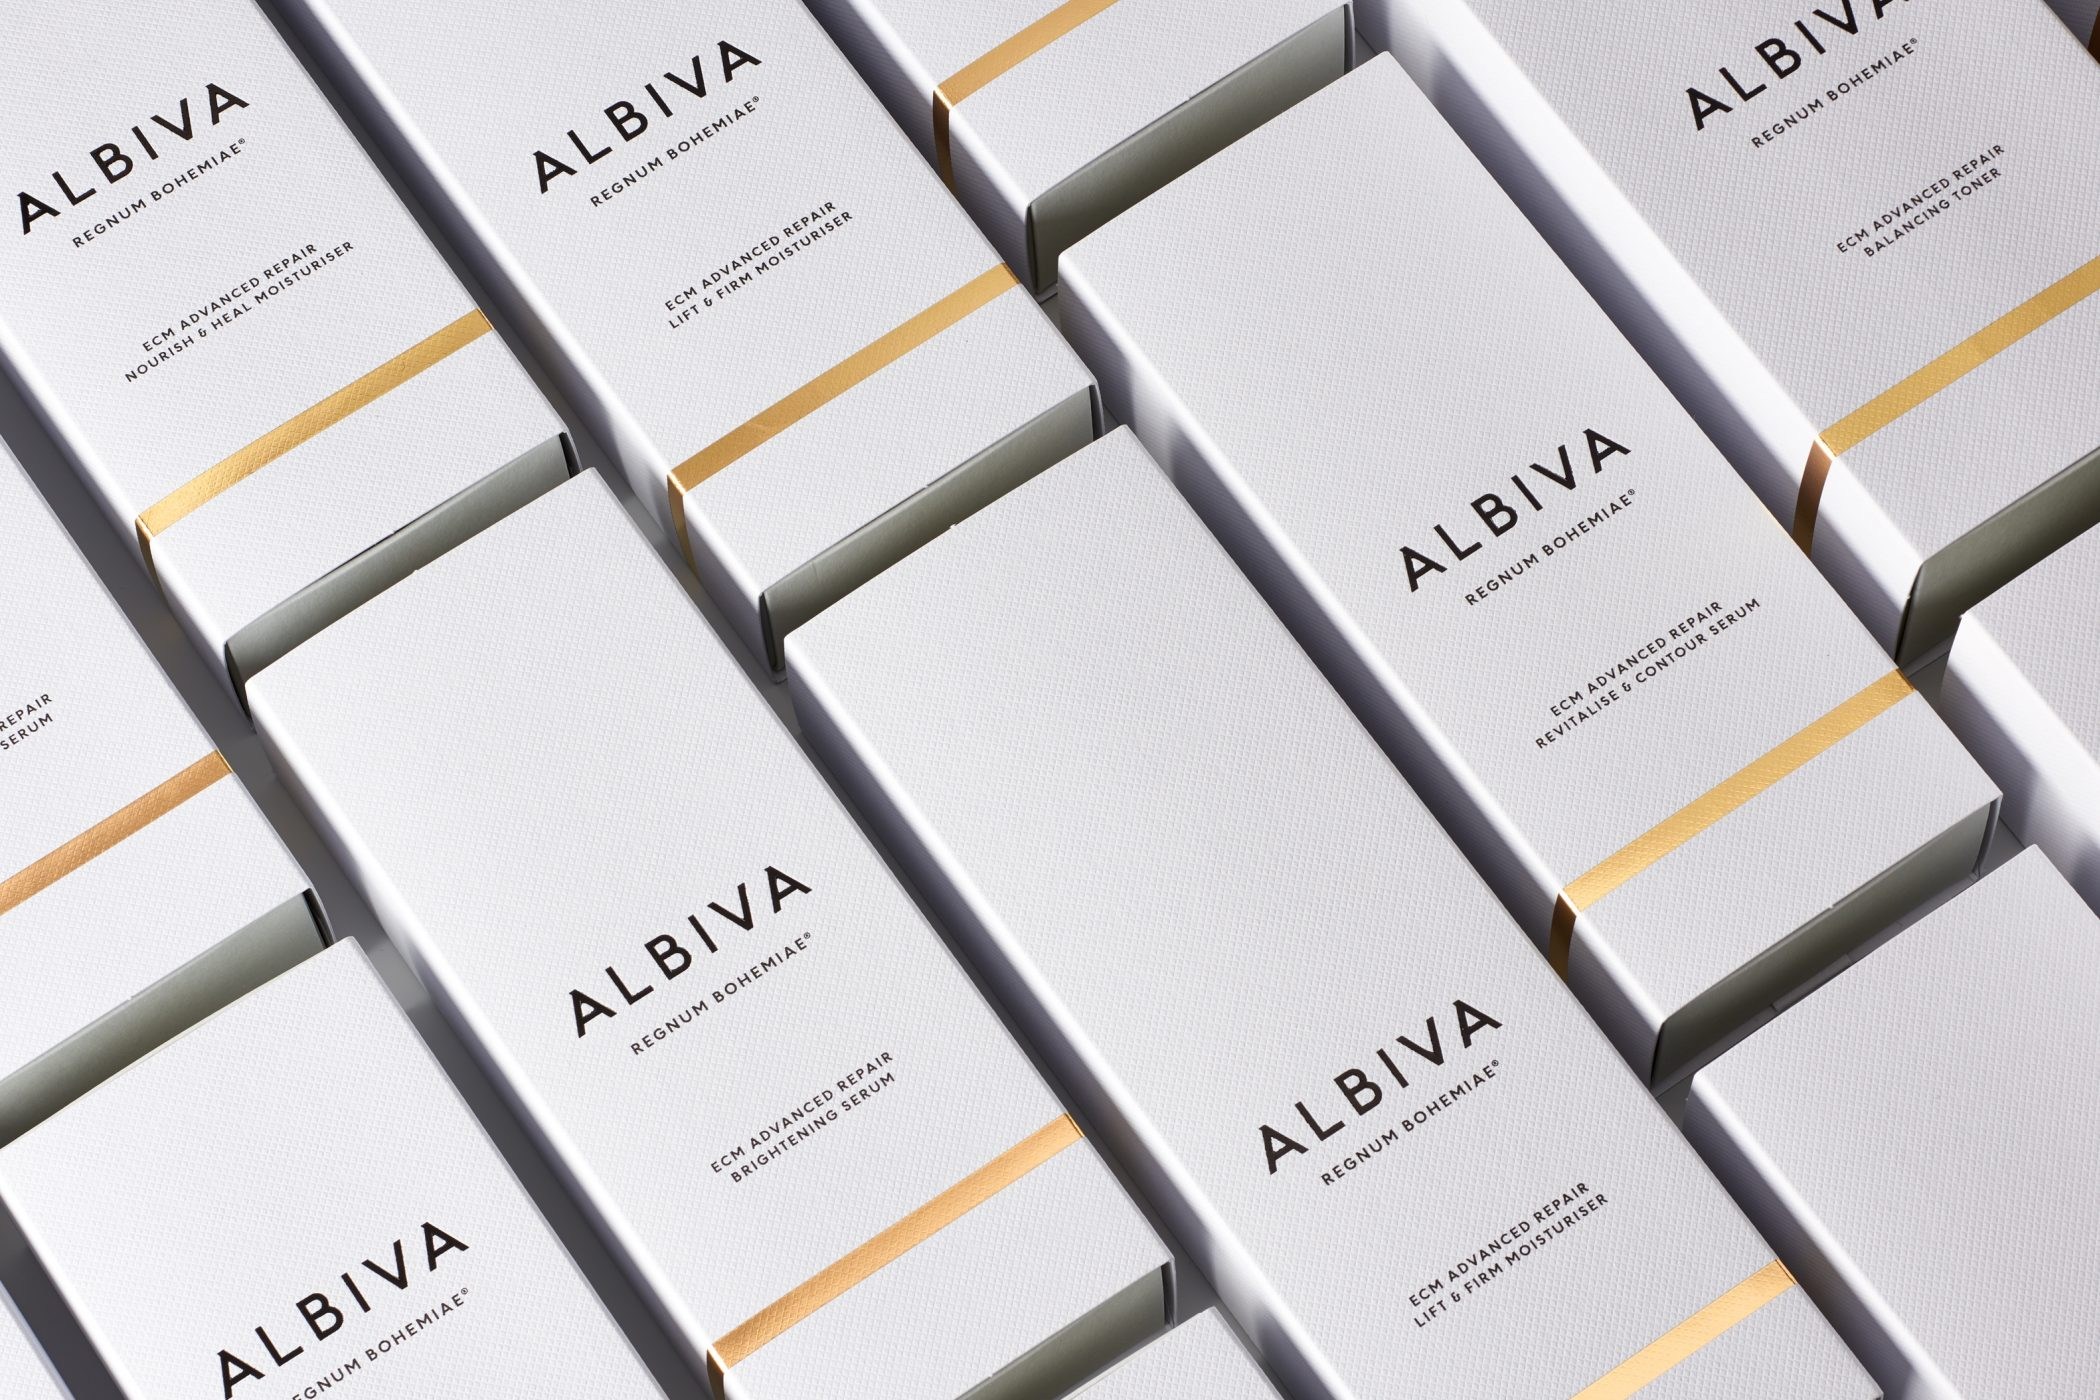 Albiva Packaging 01